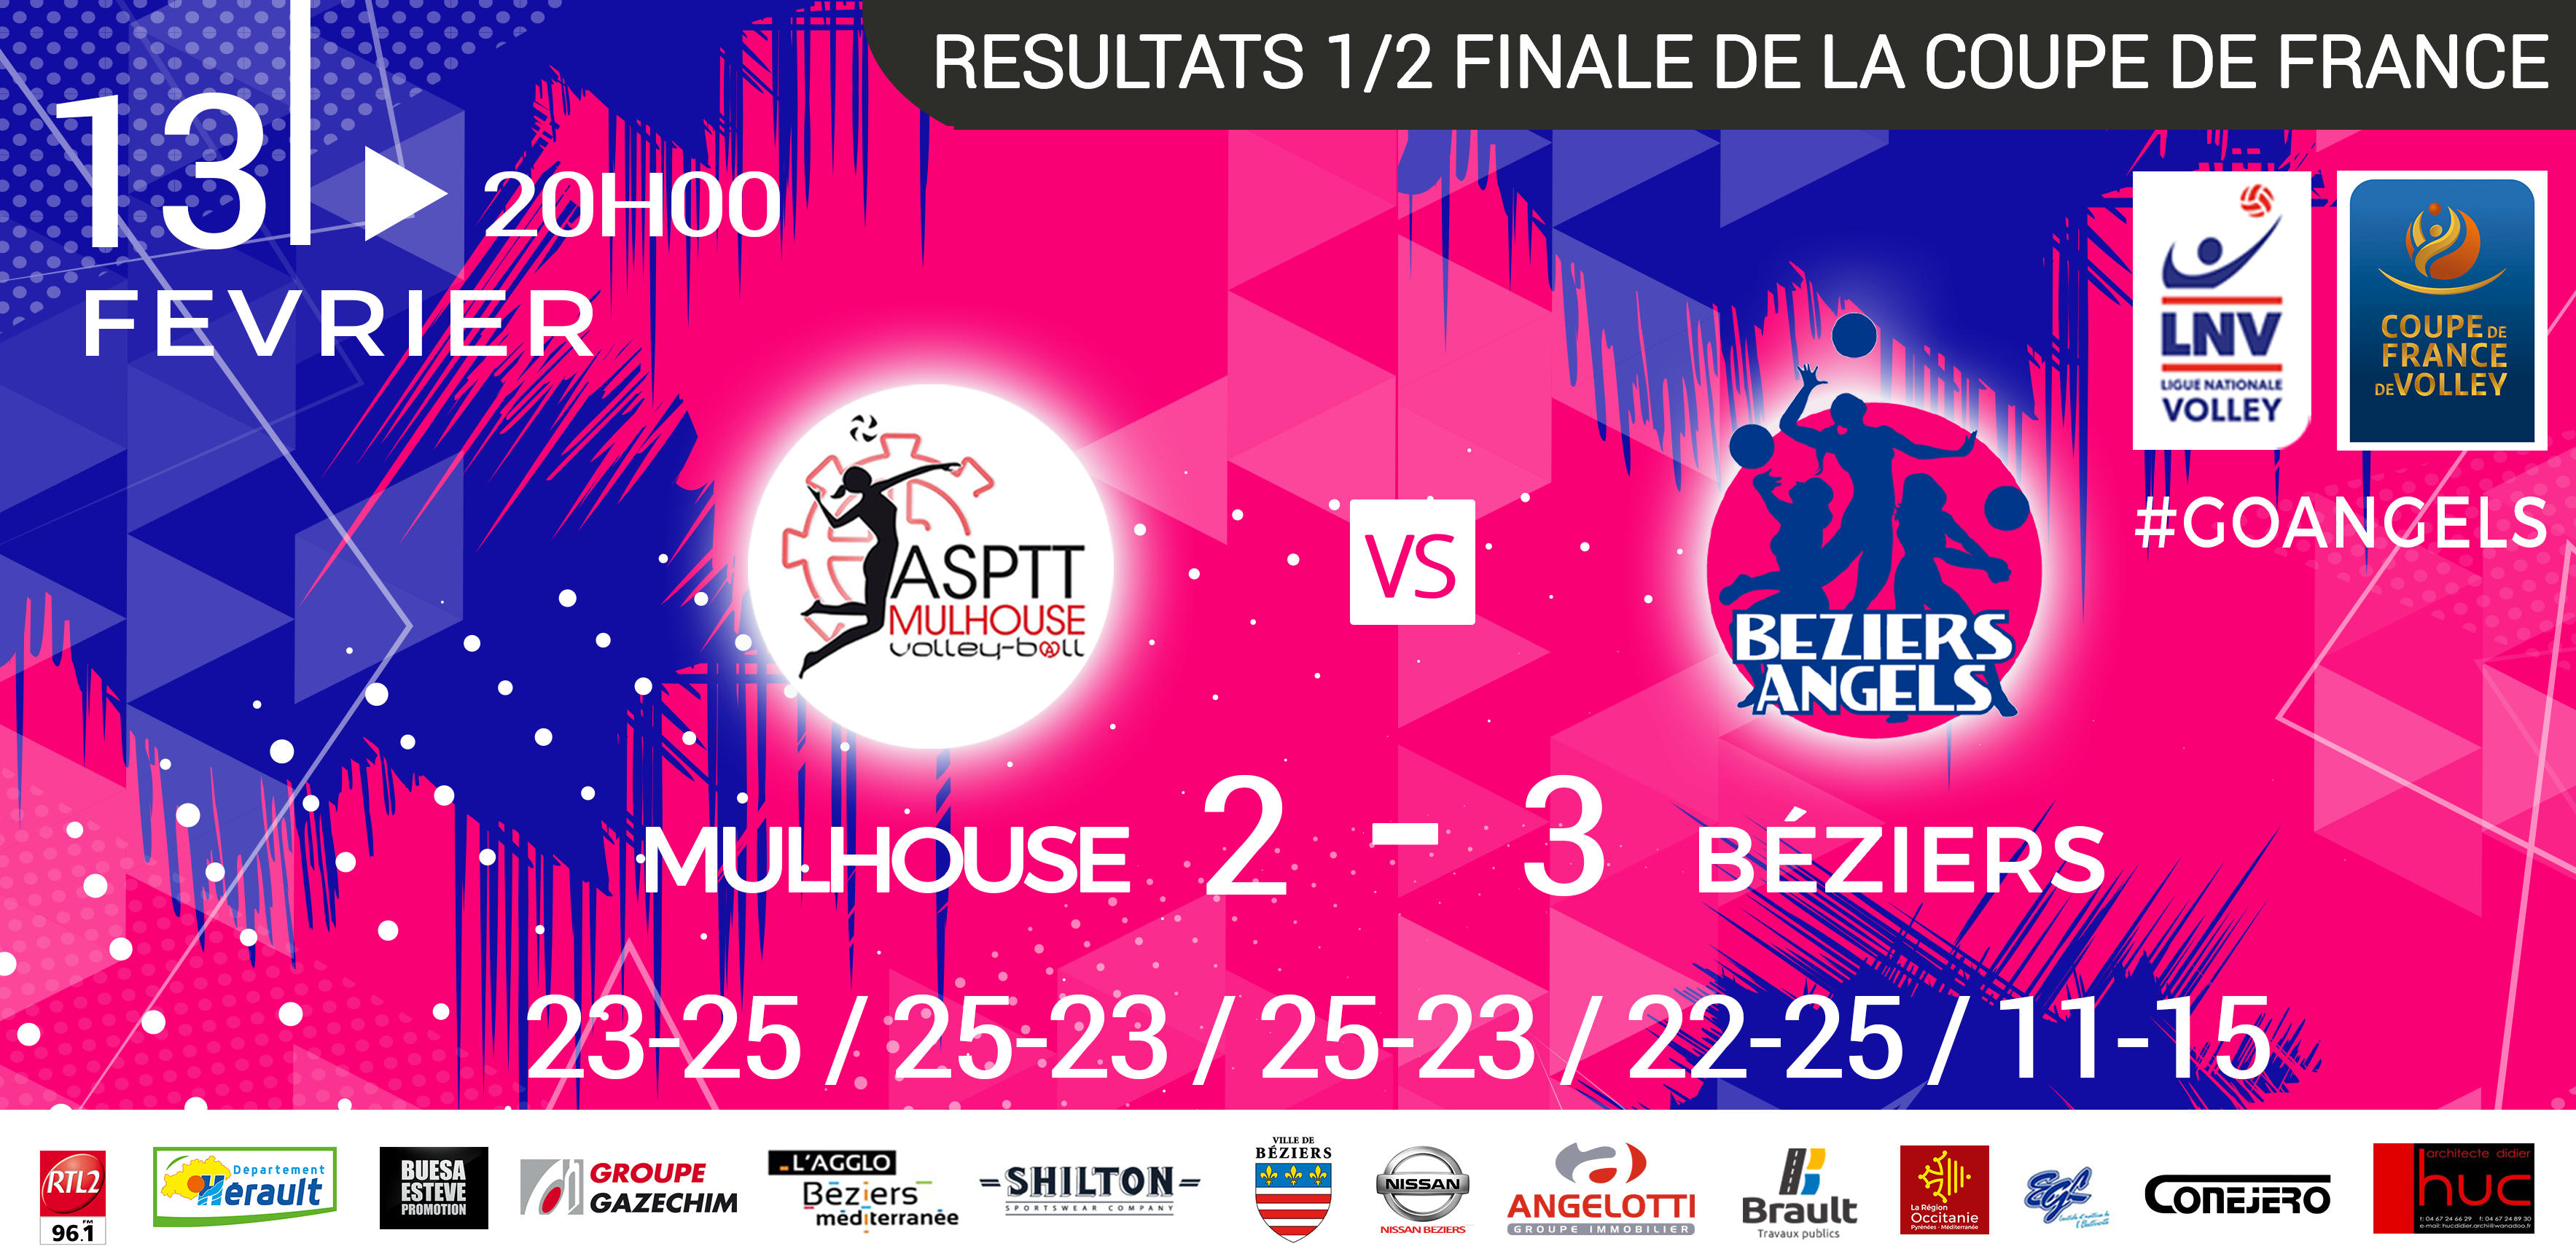 Beziers angels resultats 1 2 finale coupe de france mulhouse vs b ziers 2 3 beziers angels - Resultat de coupe de france ...